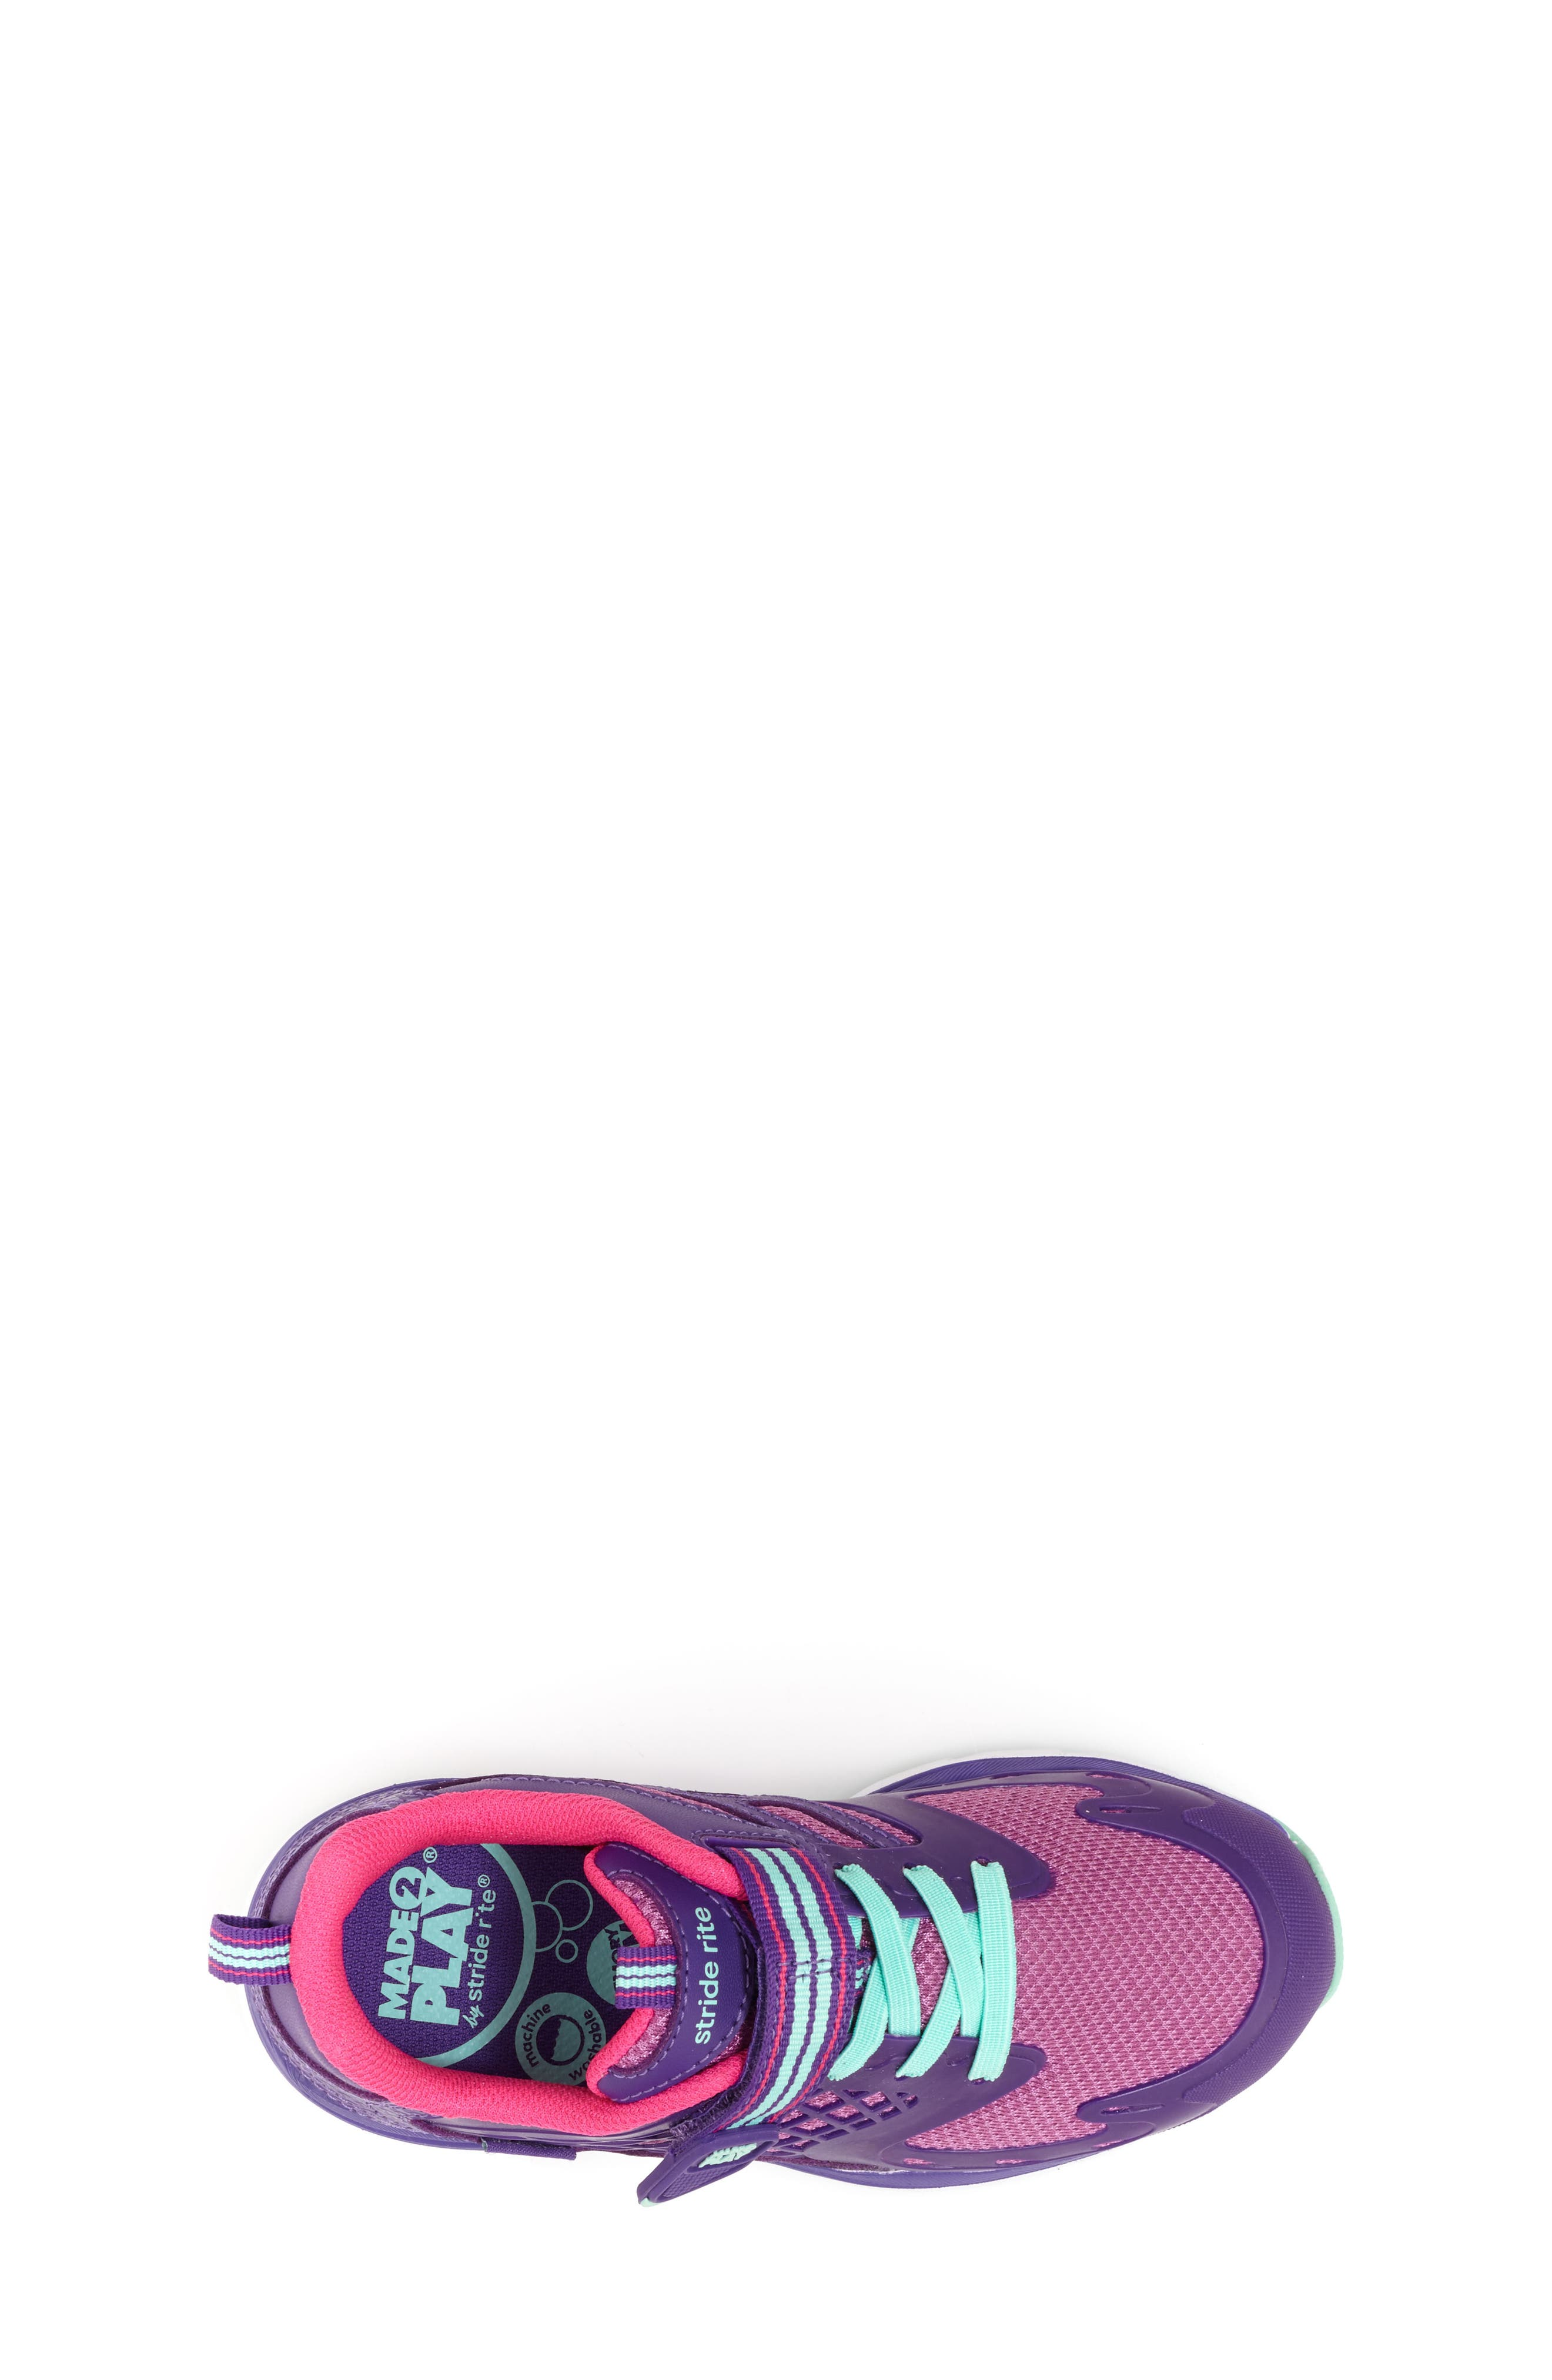 'Made2Play<sup>®</sup> Cannan Lace' Sneaker,                             Alternate thumbnail 5, color,                             500